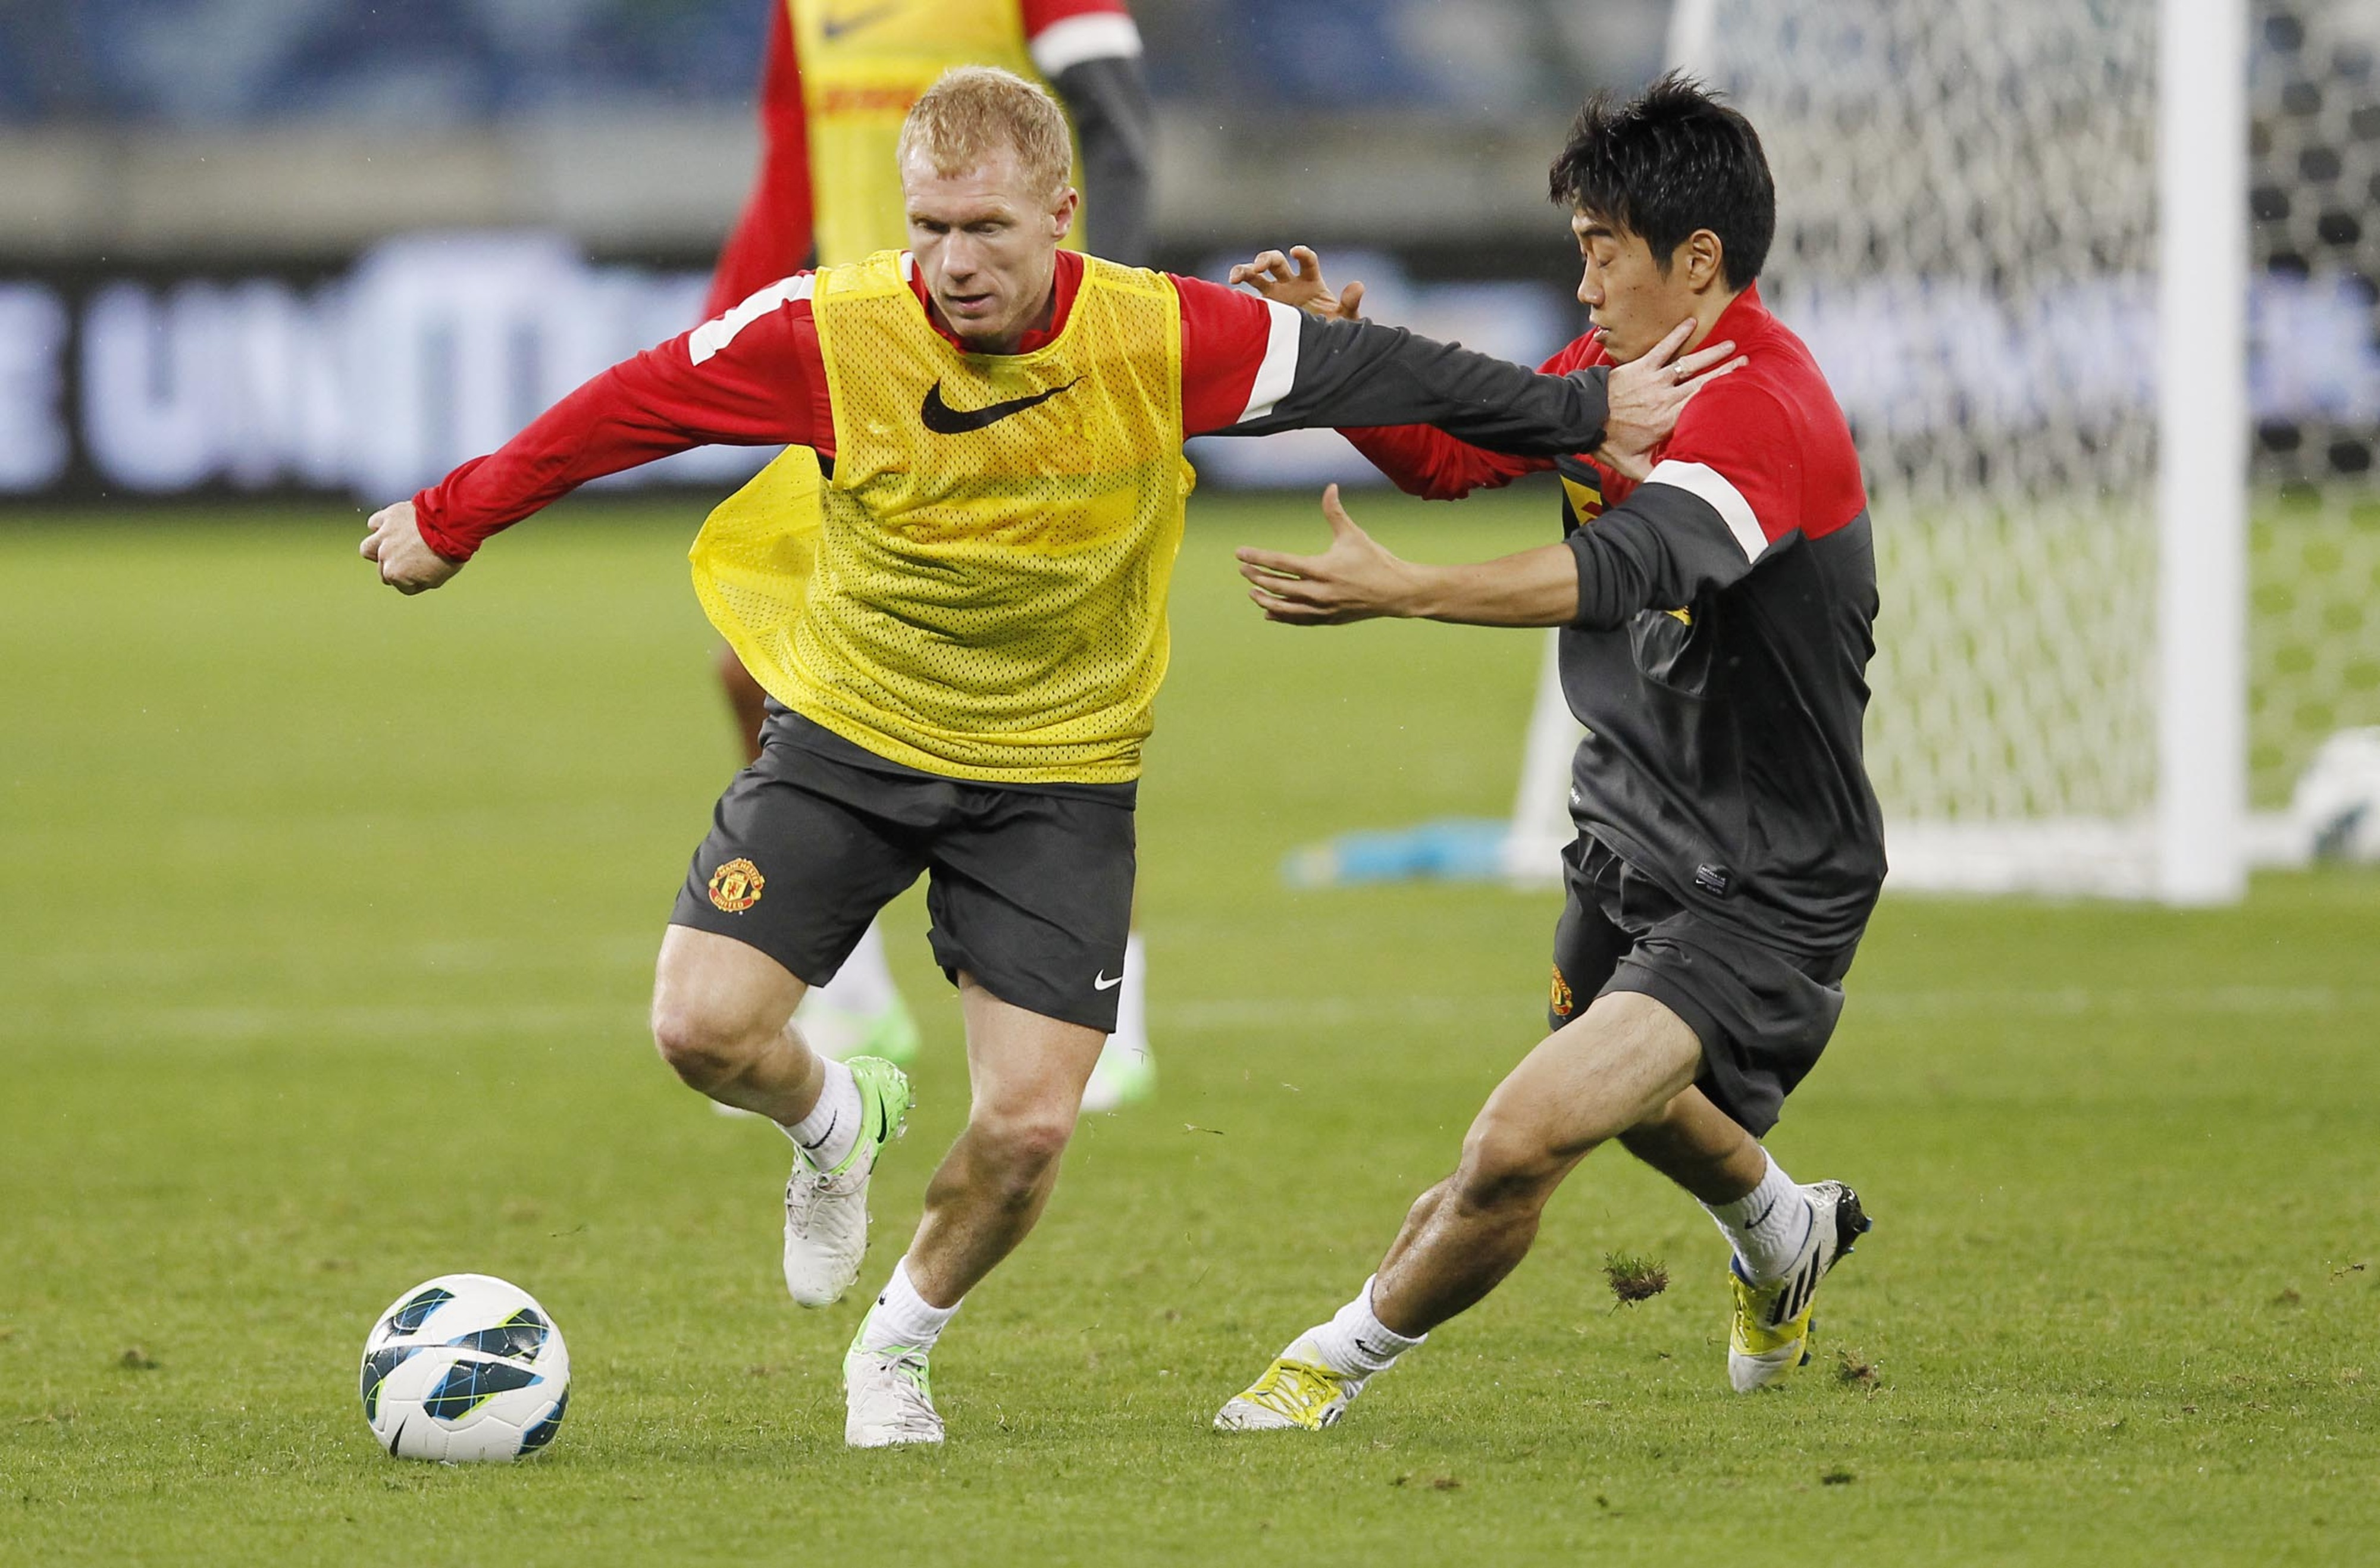 Durban, South Africa. - JULY 17:  Paul Scholes holds off Shinji Kagawa (R) during the Manchester United training session at Moses Mabhida Stadium on July 17, 2012 in Durban, South Africa..(Photo by Anesh Debiky/Gallo Images/Getty Images)